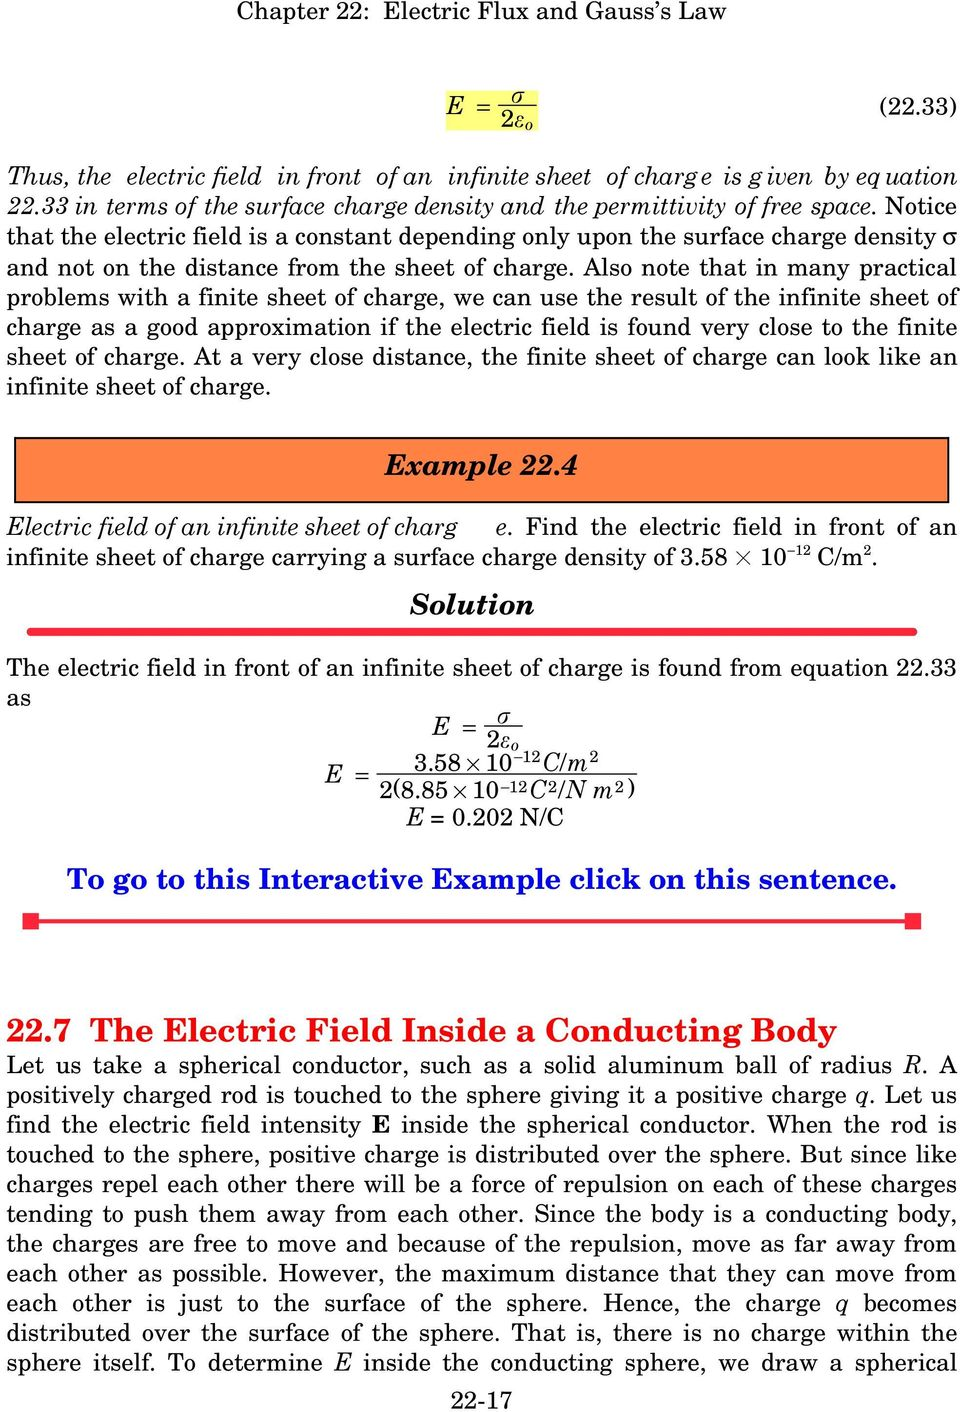 Also note that in many practical problems with a finite sheet of charge, we can use the result of the infinite sheet of charge as a good approximation if the electric field is found very close to the